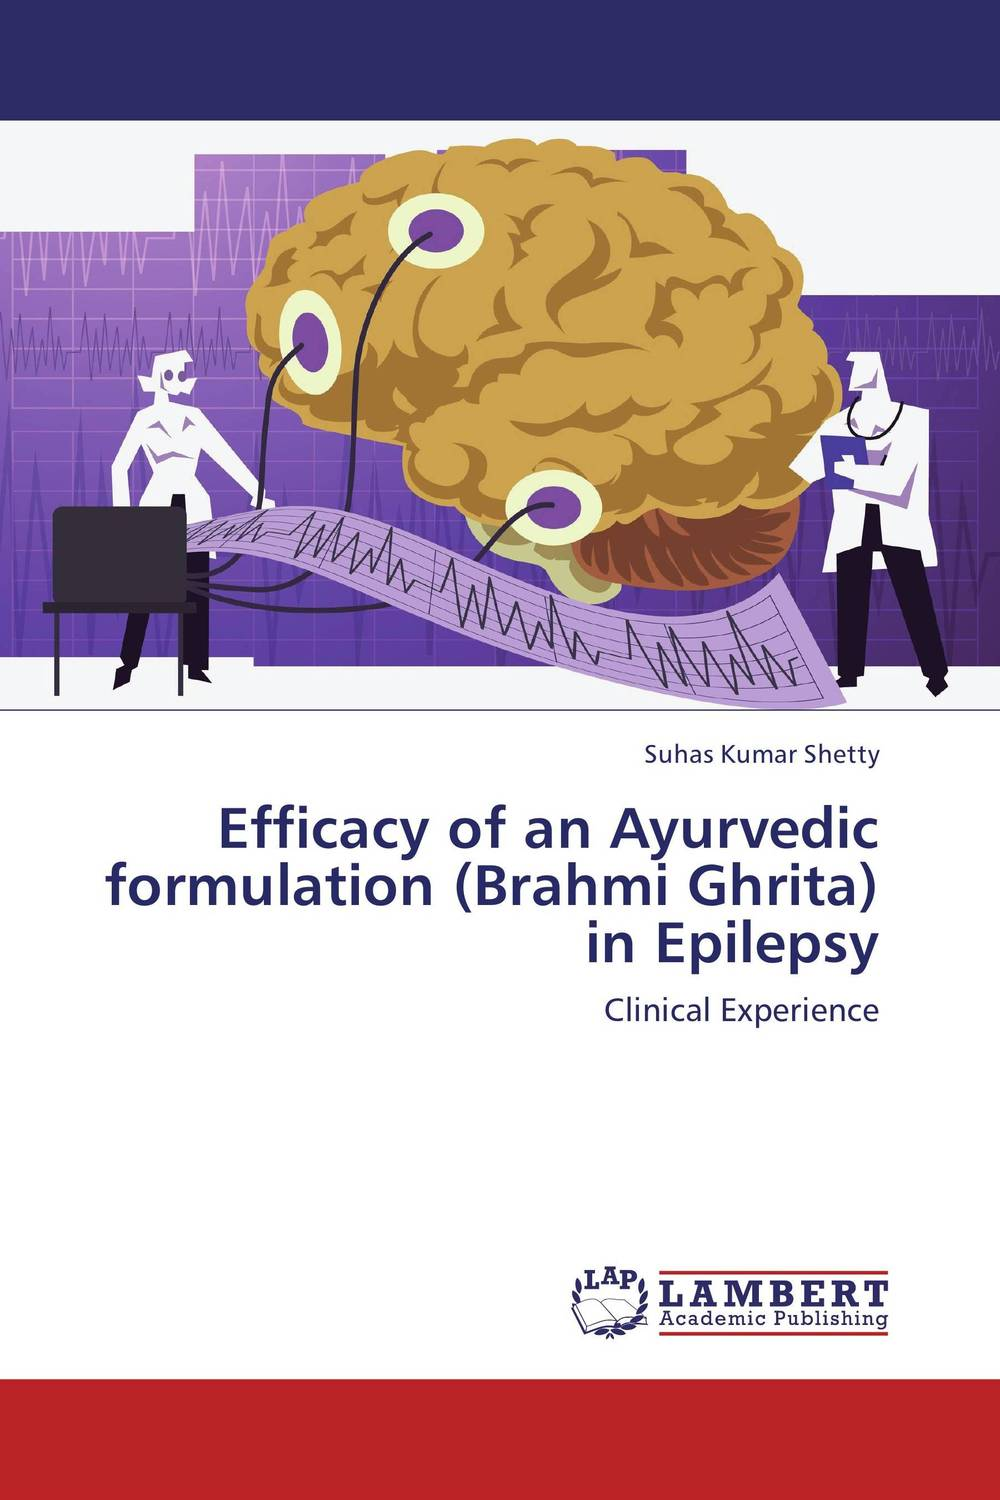 Efficacy of an Ayurvedic formulation (Brahmi Ghrita) in Epilepsy epilepsy in children psychological concerns